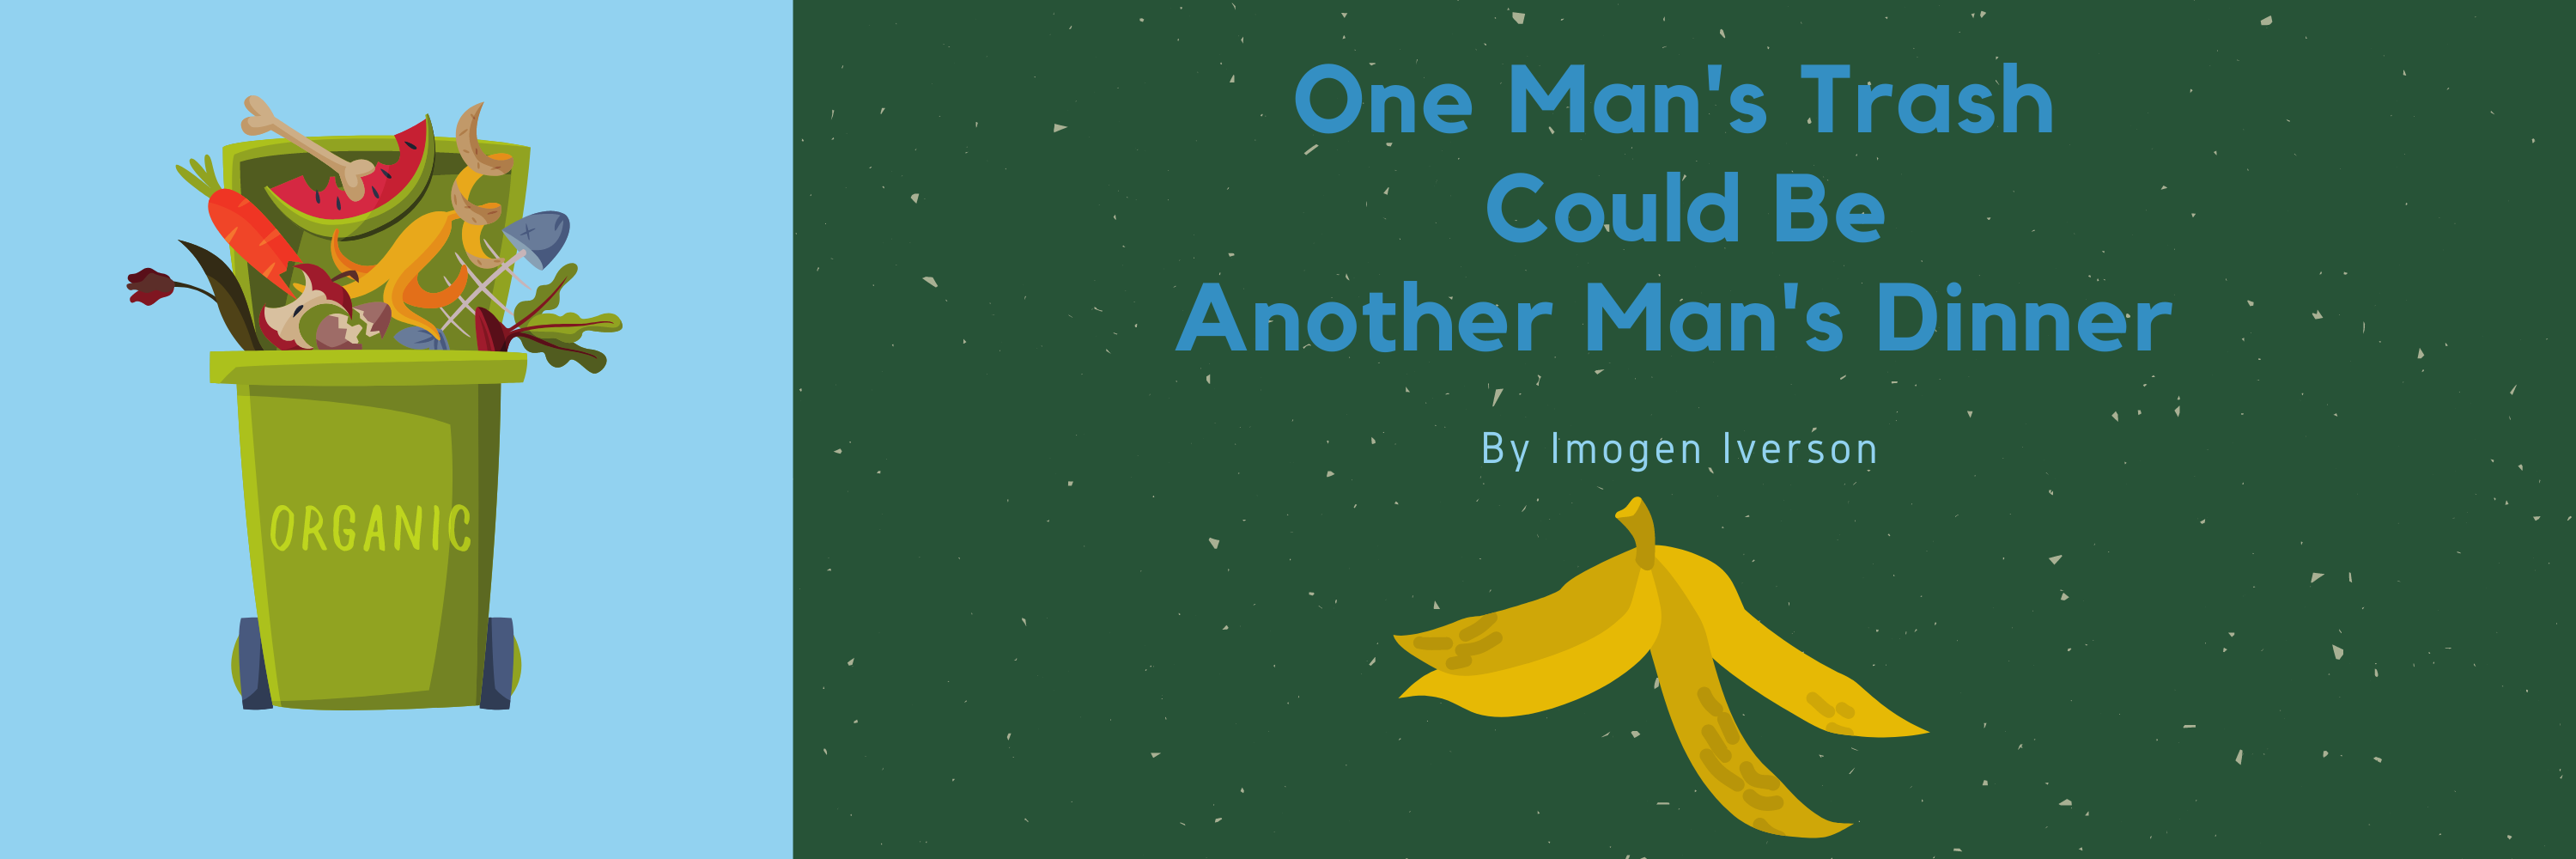 """An overflowing green recycling bin is full of vegetables. to the right, on a dark green background it says in blue text """"one man's trash could be another man's treasure by imogen iverson"""". beneath it, a banana peel is splayed out."""